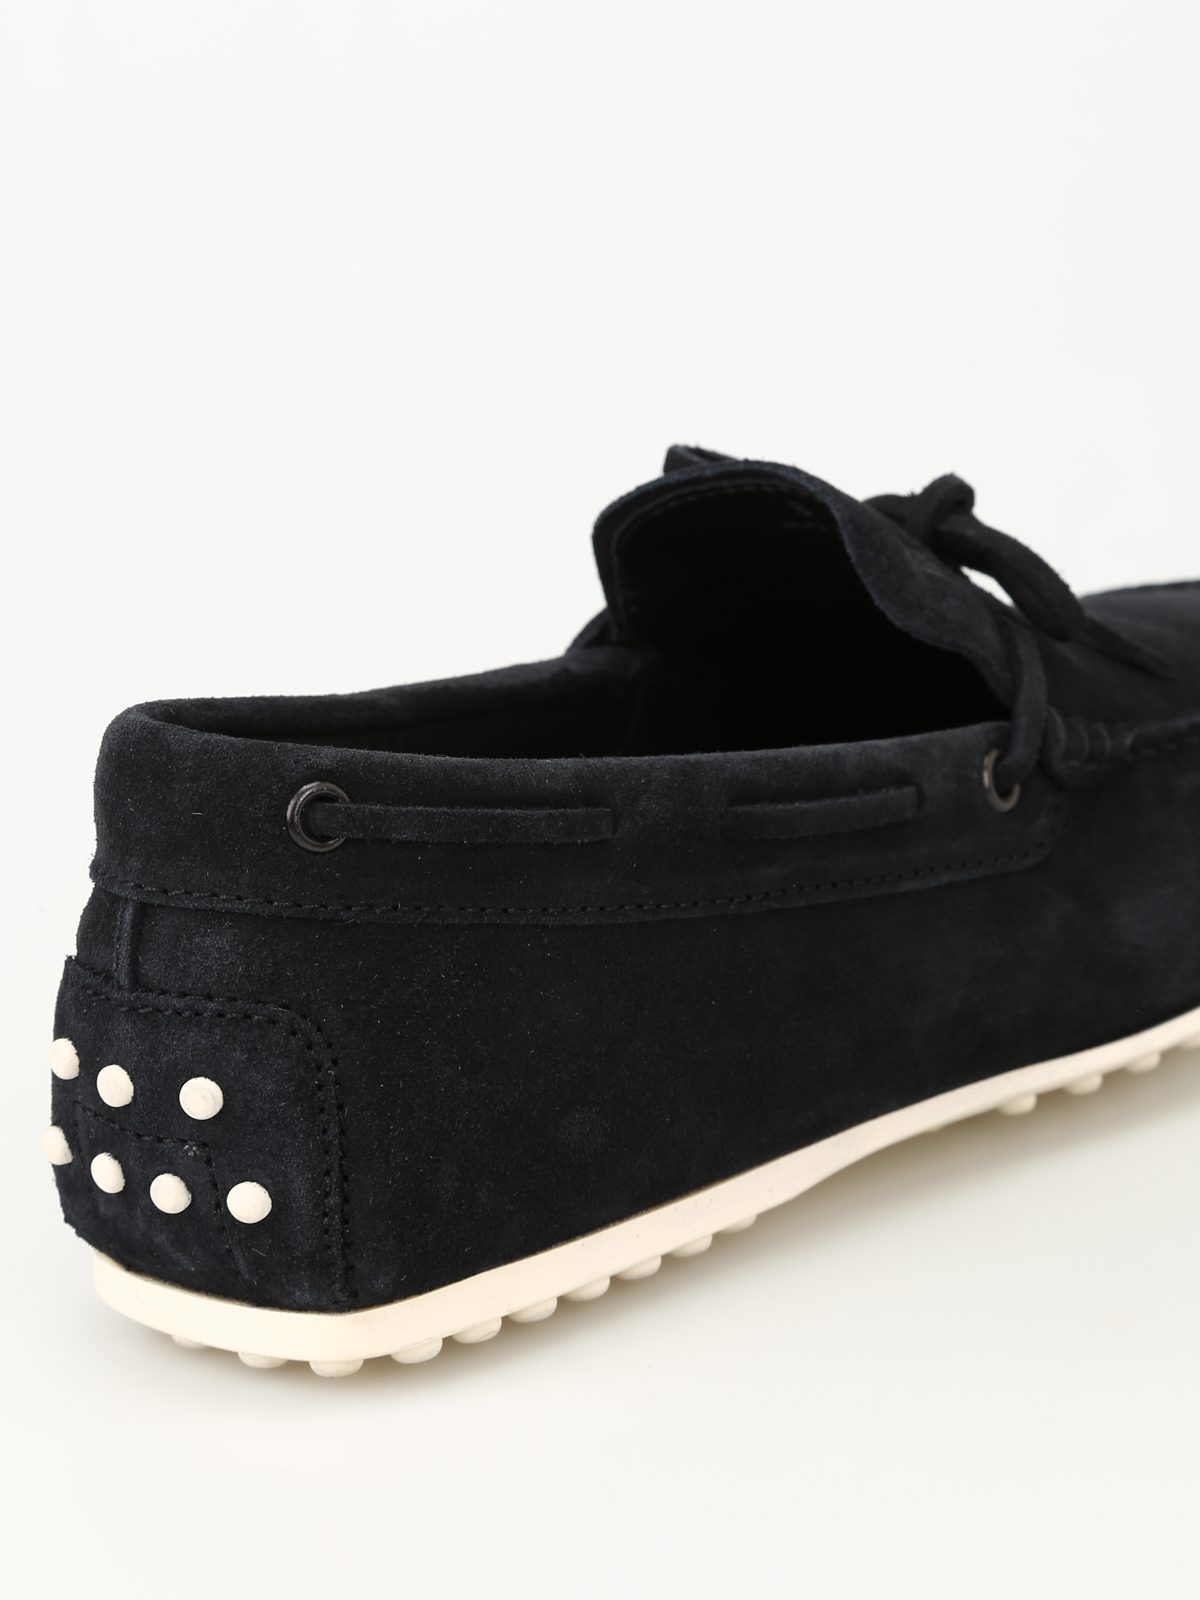 da29251ce48 Tod S - City Gommino dark blue loafers - Loafers   Slippers ...